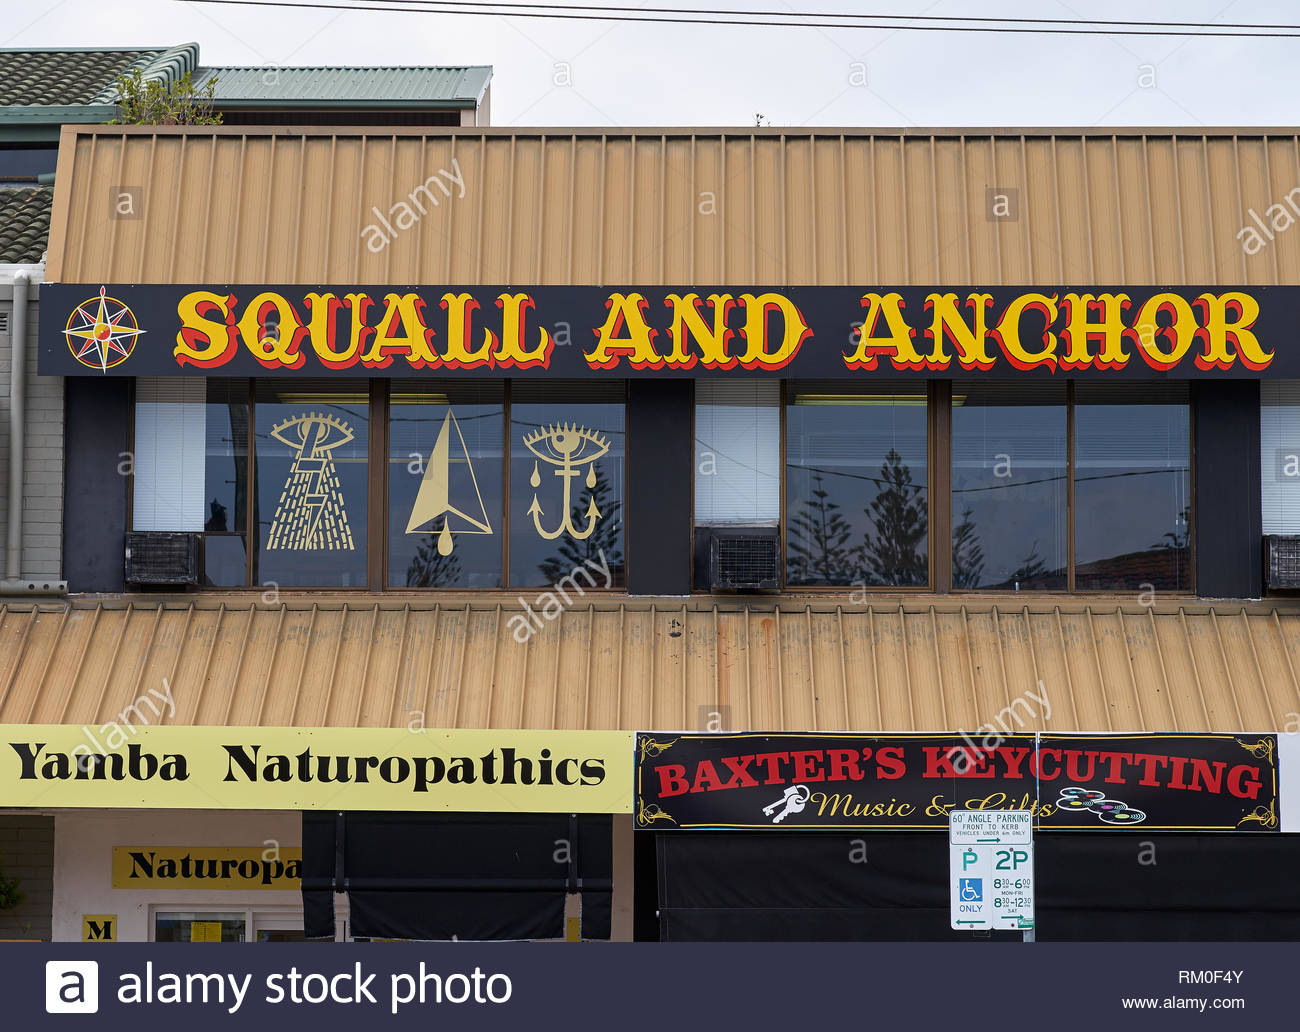 Shop frontage in the main street of Yamba - 'Squall and Anchor Tattooing', 'Yamba Naturopathics' and 'Baxter's Keycutting' - with satanic symbolism. - Stock Image